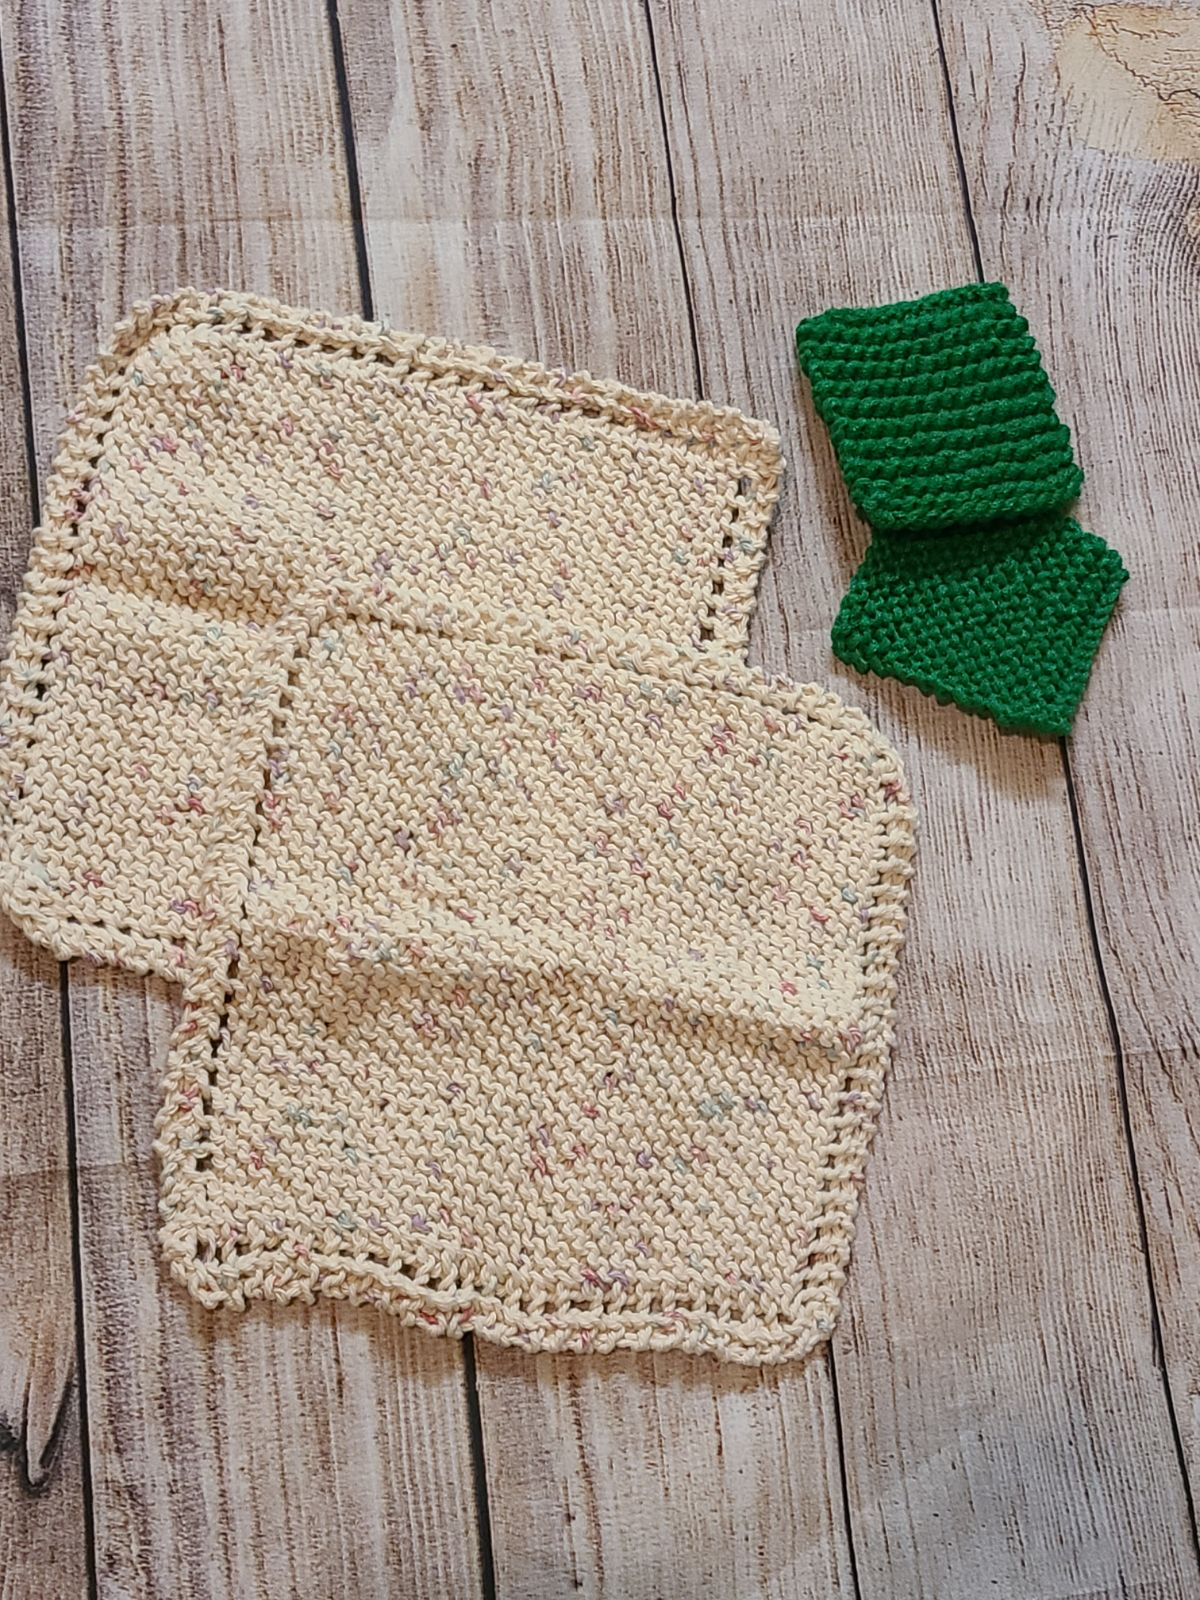 Crochet Wash Cloths and Scrubbers